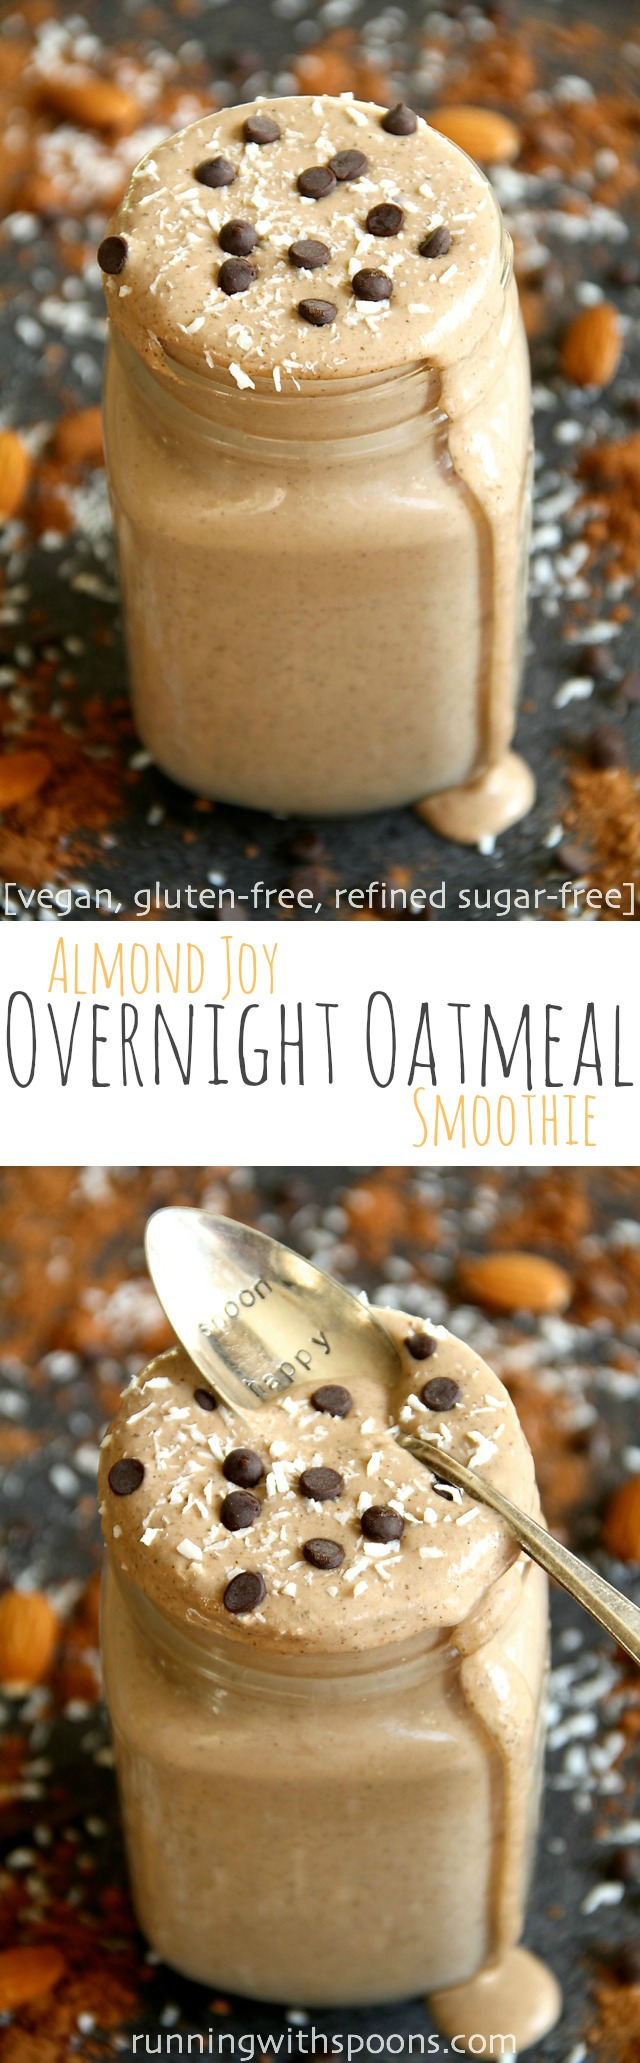 Almond Joy Overnight Oatmeal Smoothie - cool, creamy, and sure to keep you satisfied for hours! This vegan smoothie combines the flavours of chocolate, almonds, and coconut in a delicious and healthy breakfast! || runningwithspoons.com #vegan #healthy